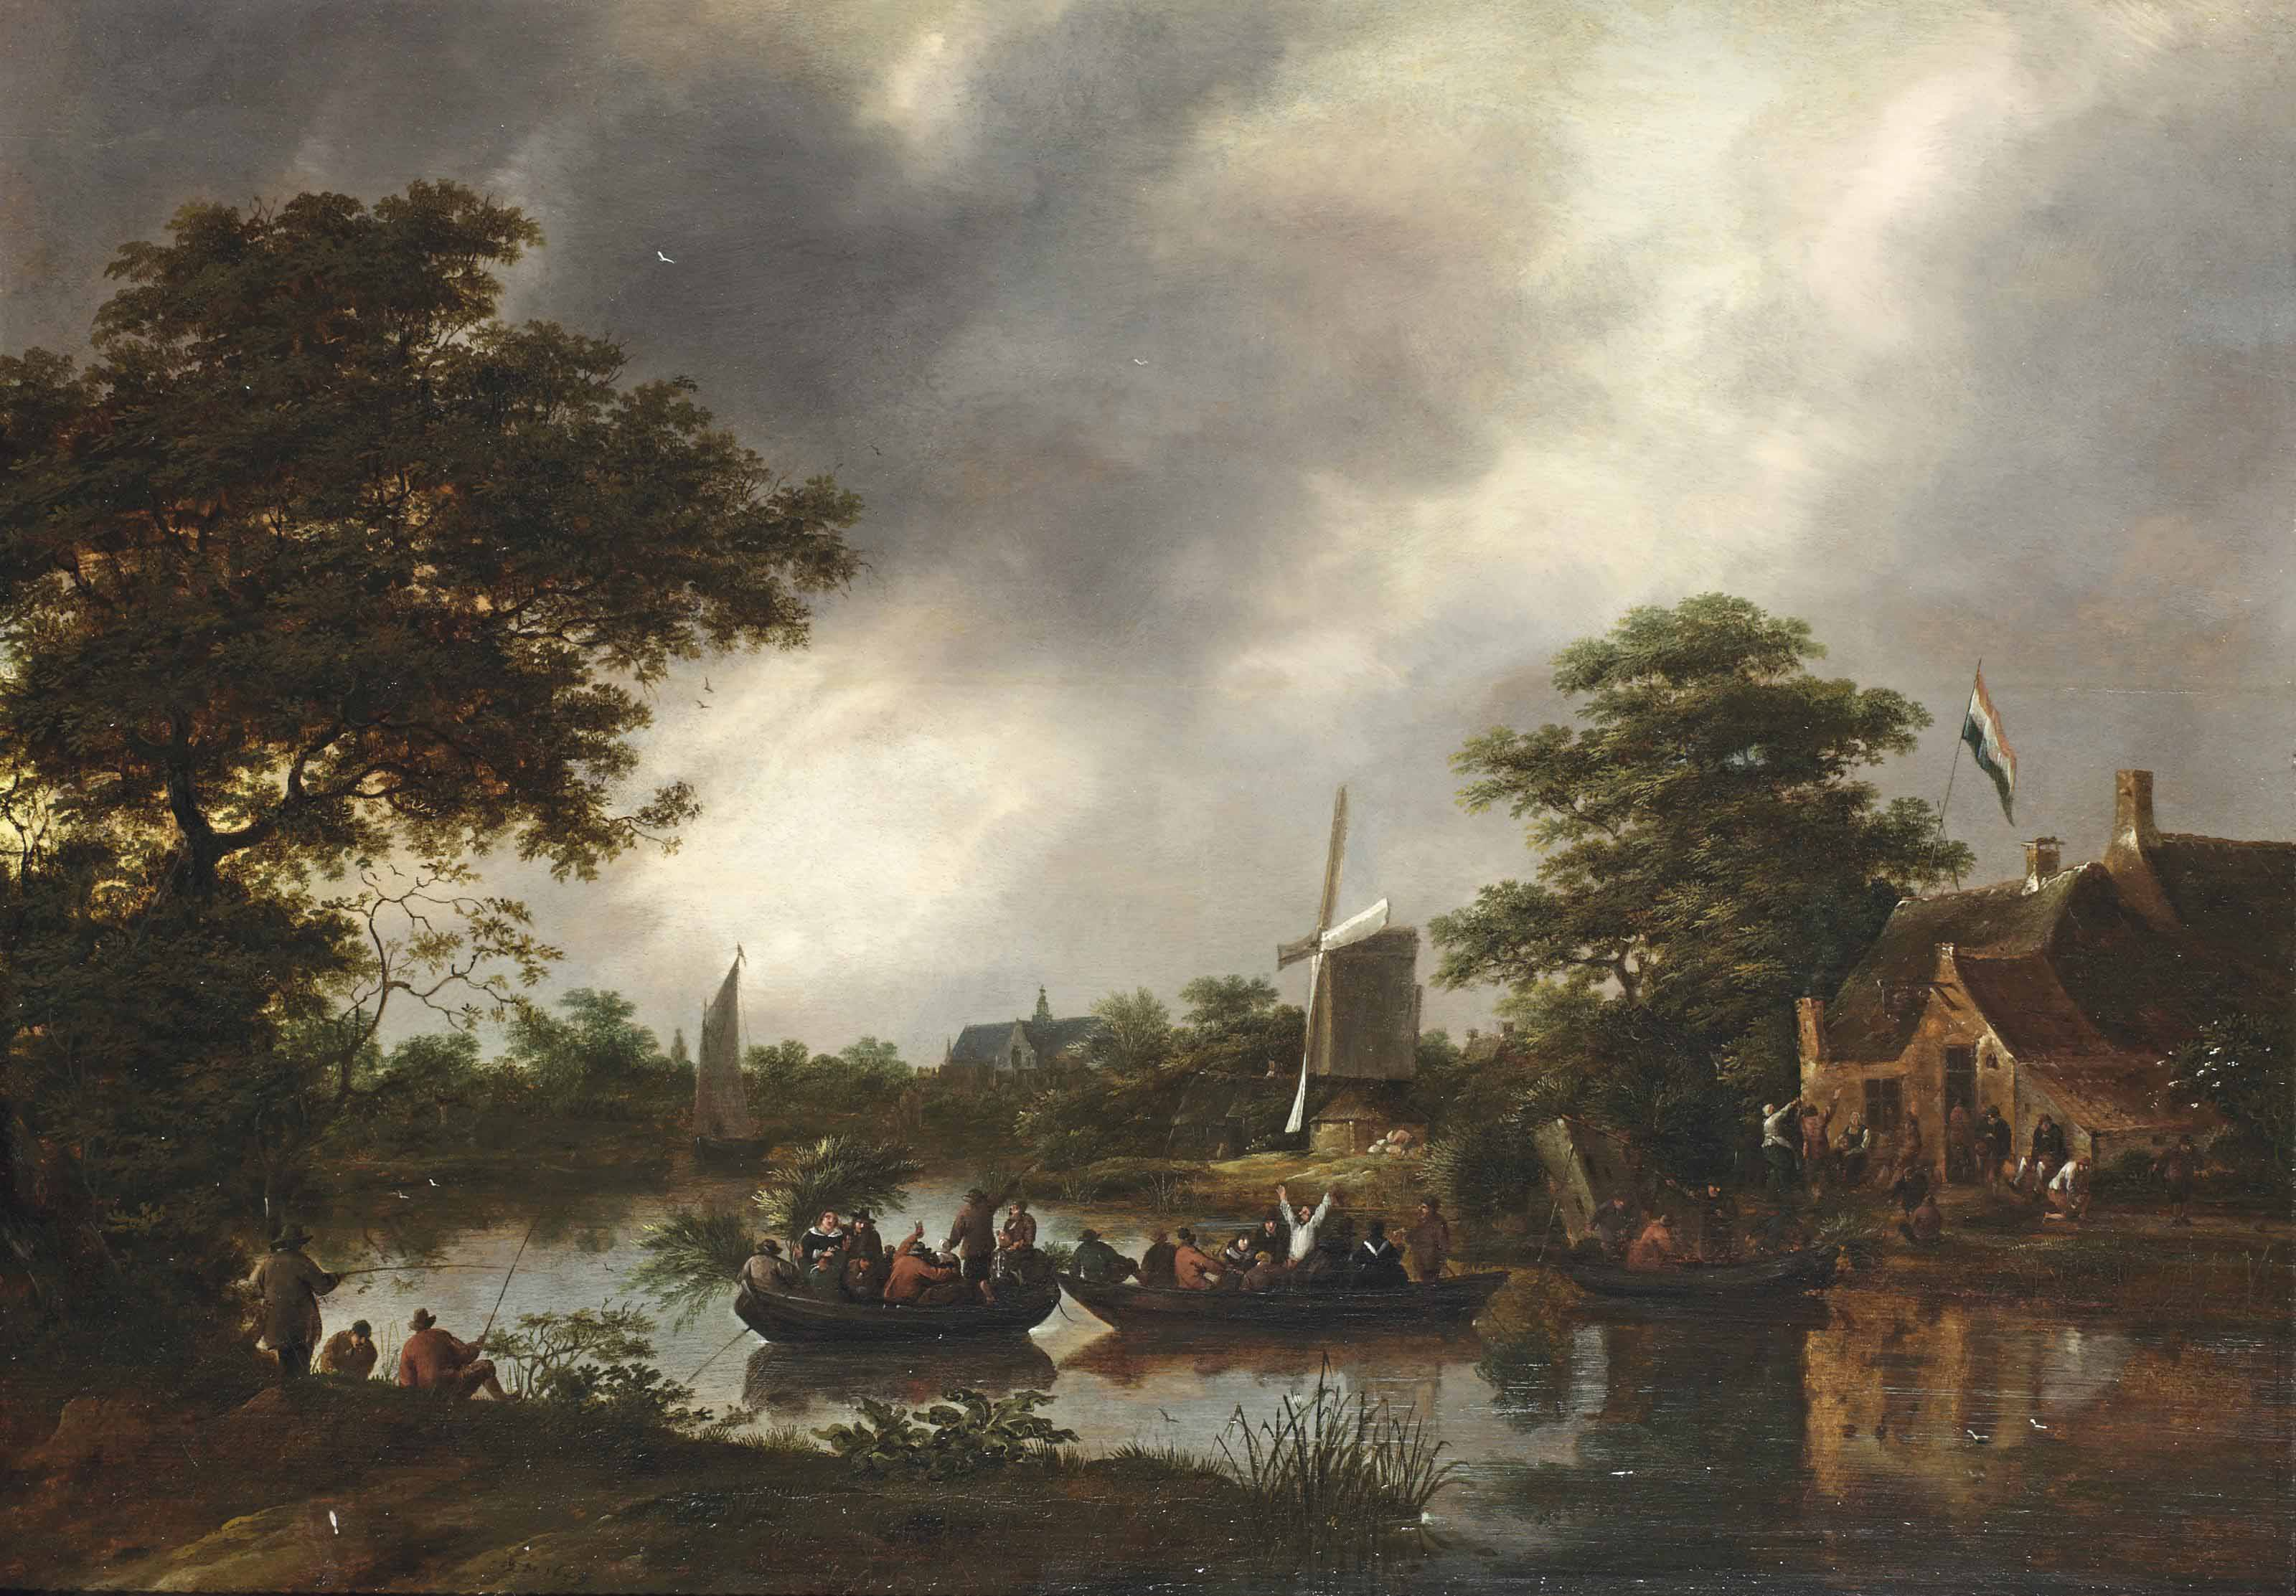 A river landscape with figures on ferryboats, leaving a carnival